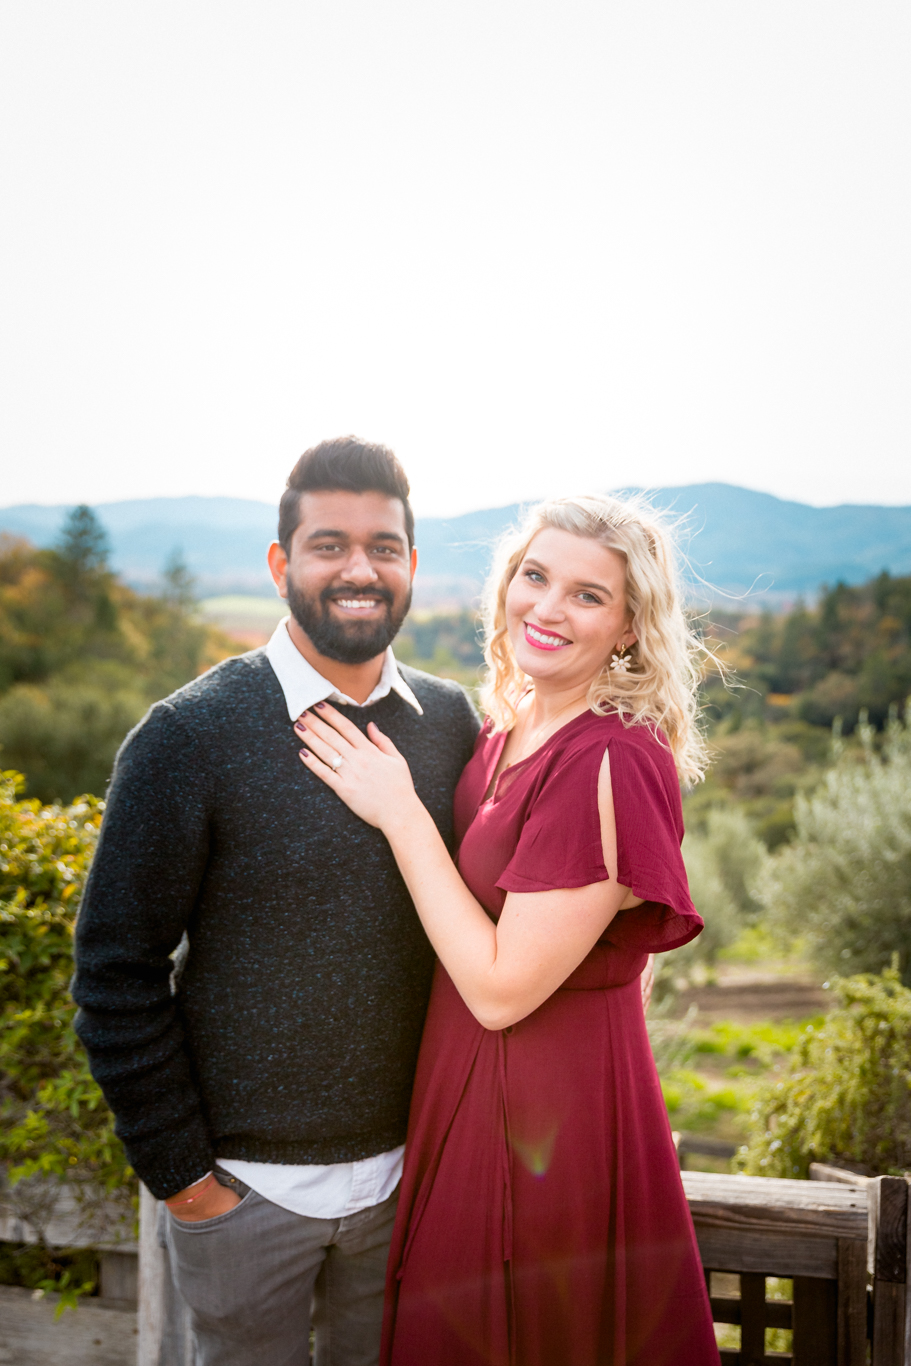 2018.12.03_Ashir-and-Emily-Engagement-Photography-@heymikefrancis-napa-valley-wedding-sacremento-california-heyfrancis-mikefrancis-7747.jpg